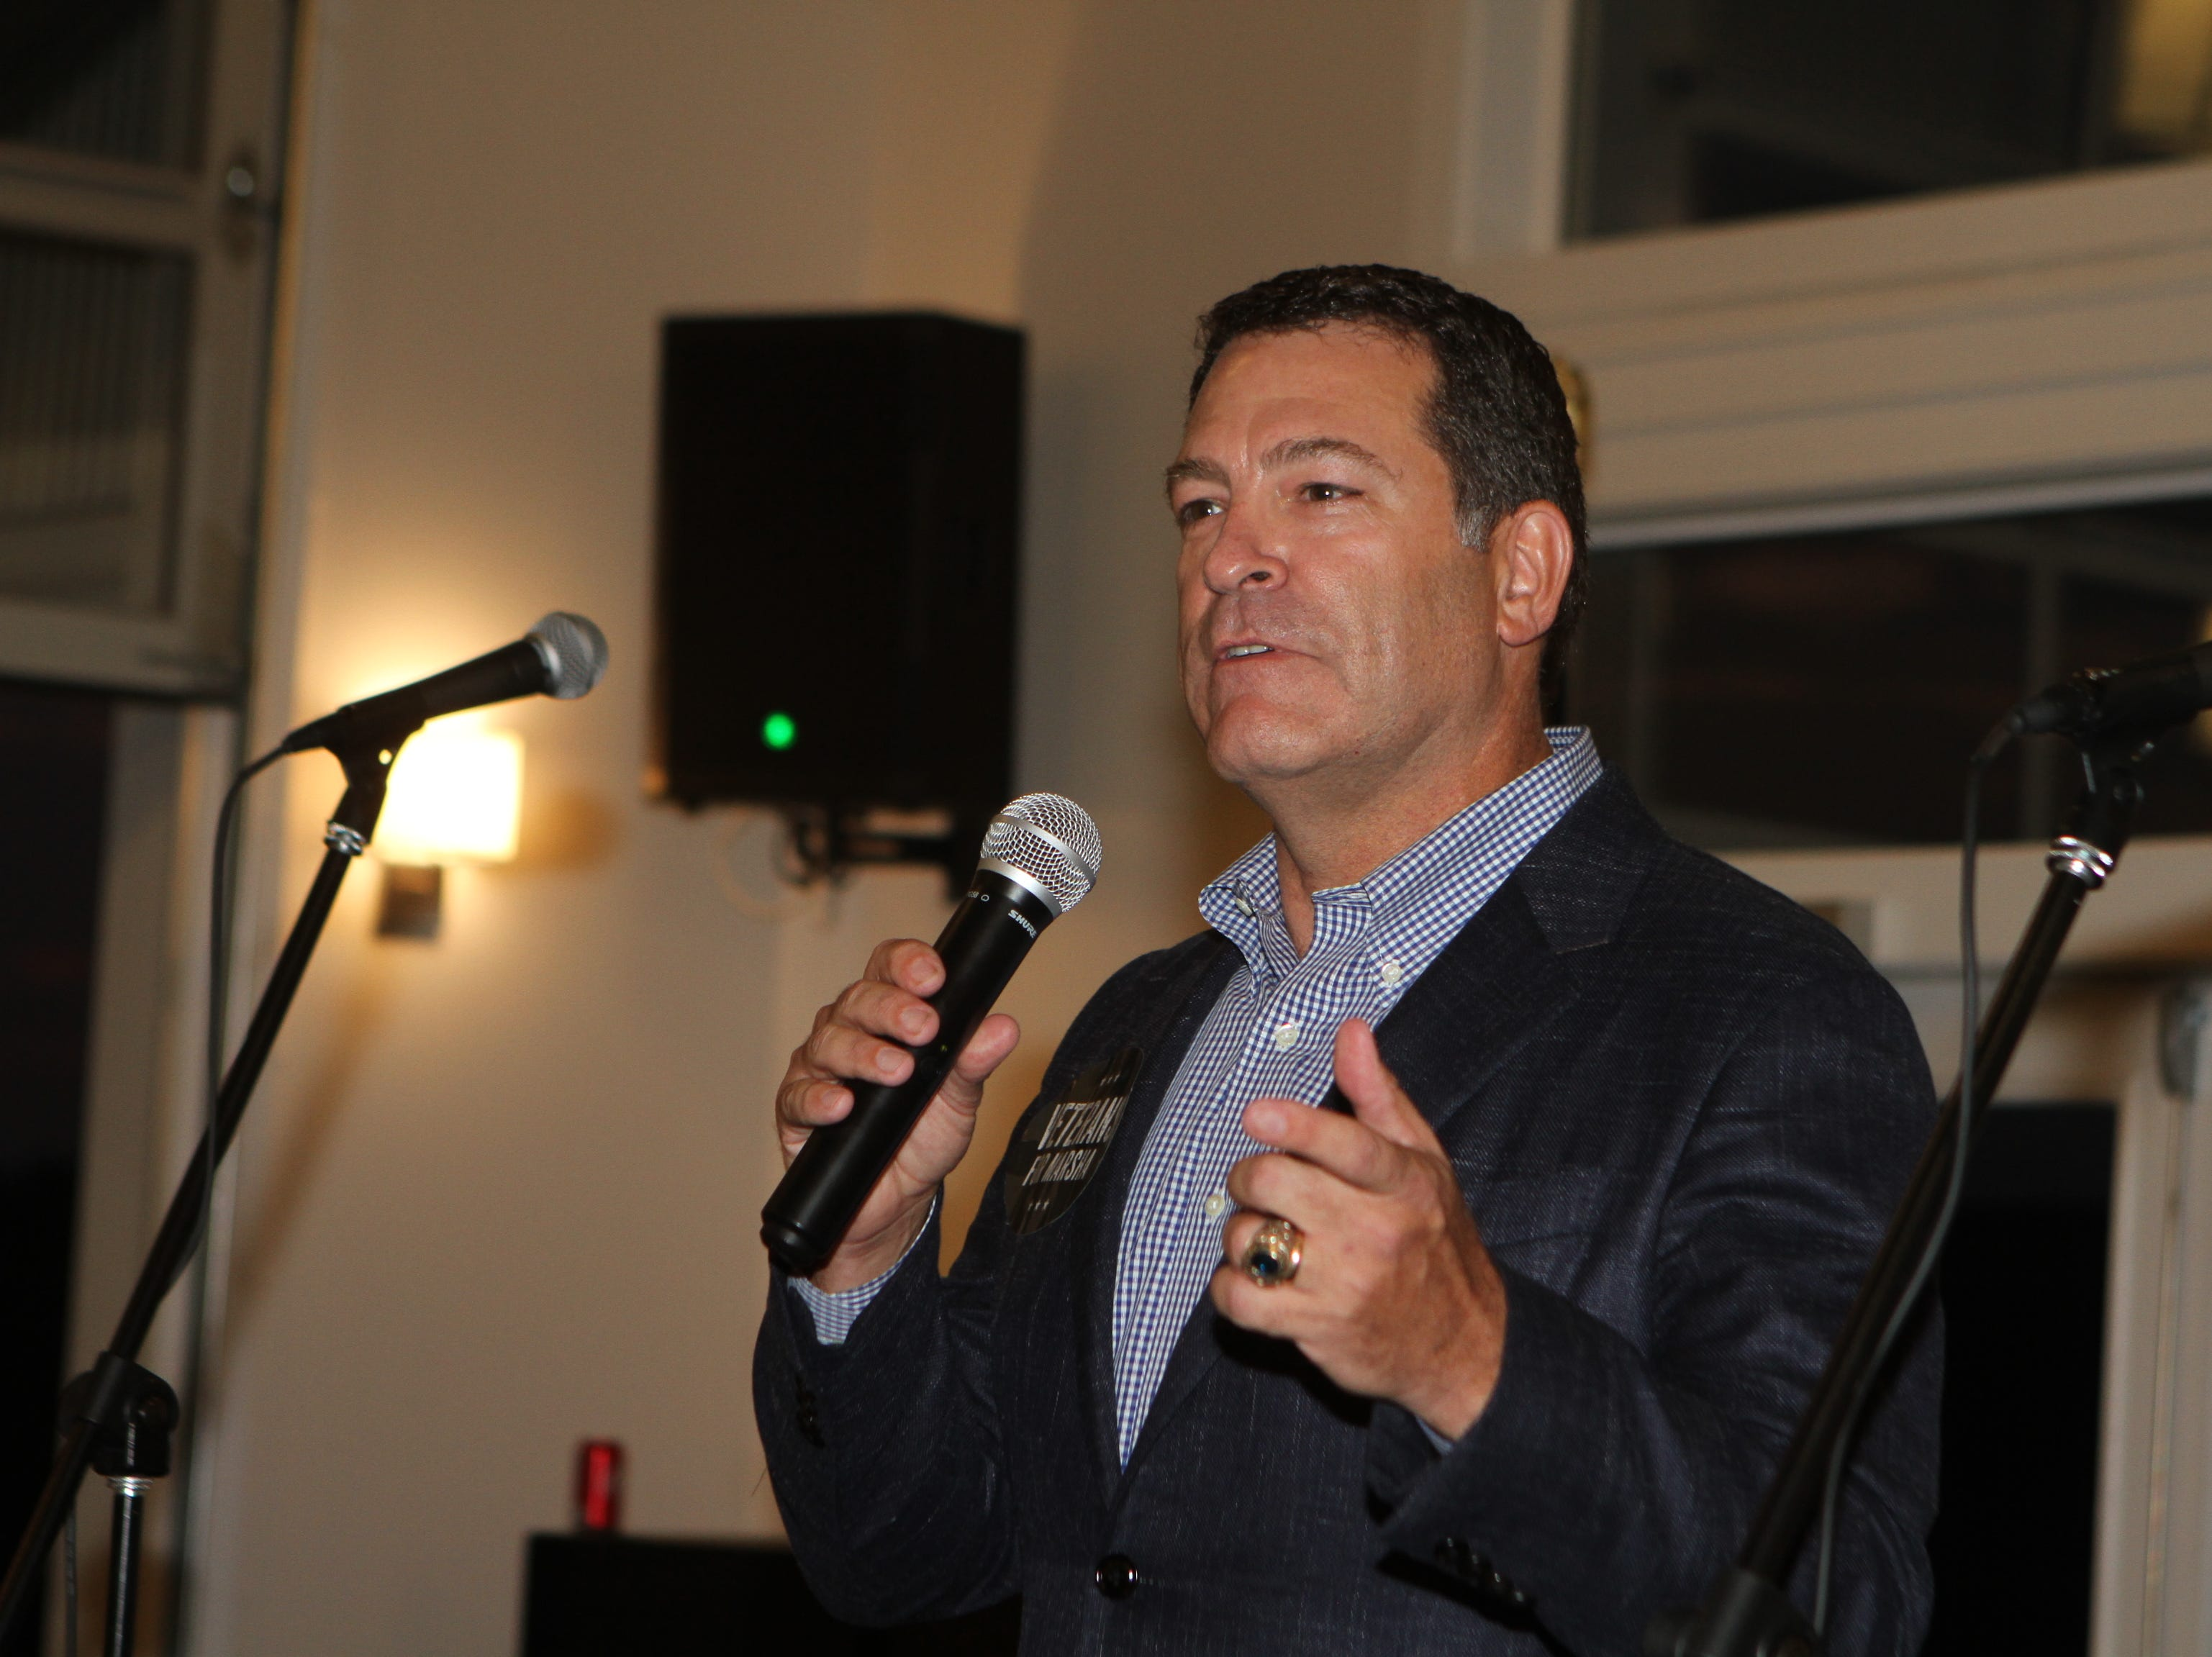 State Sen. Mark Green at the campaign fundraiser for U.S. Senate candidate  Marsha Blackburn at The Ruby Cora Event Venue in Adams in August 2018.